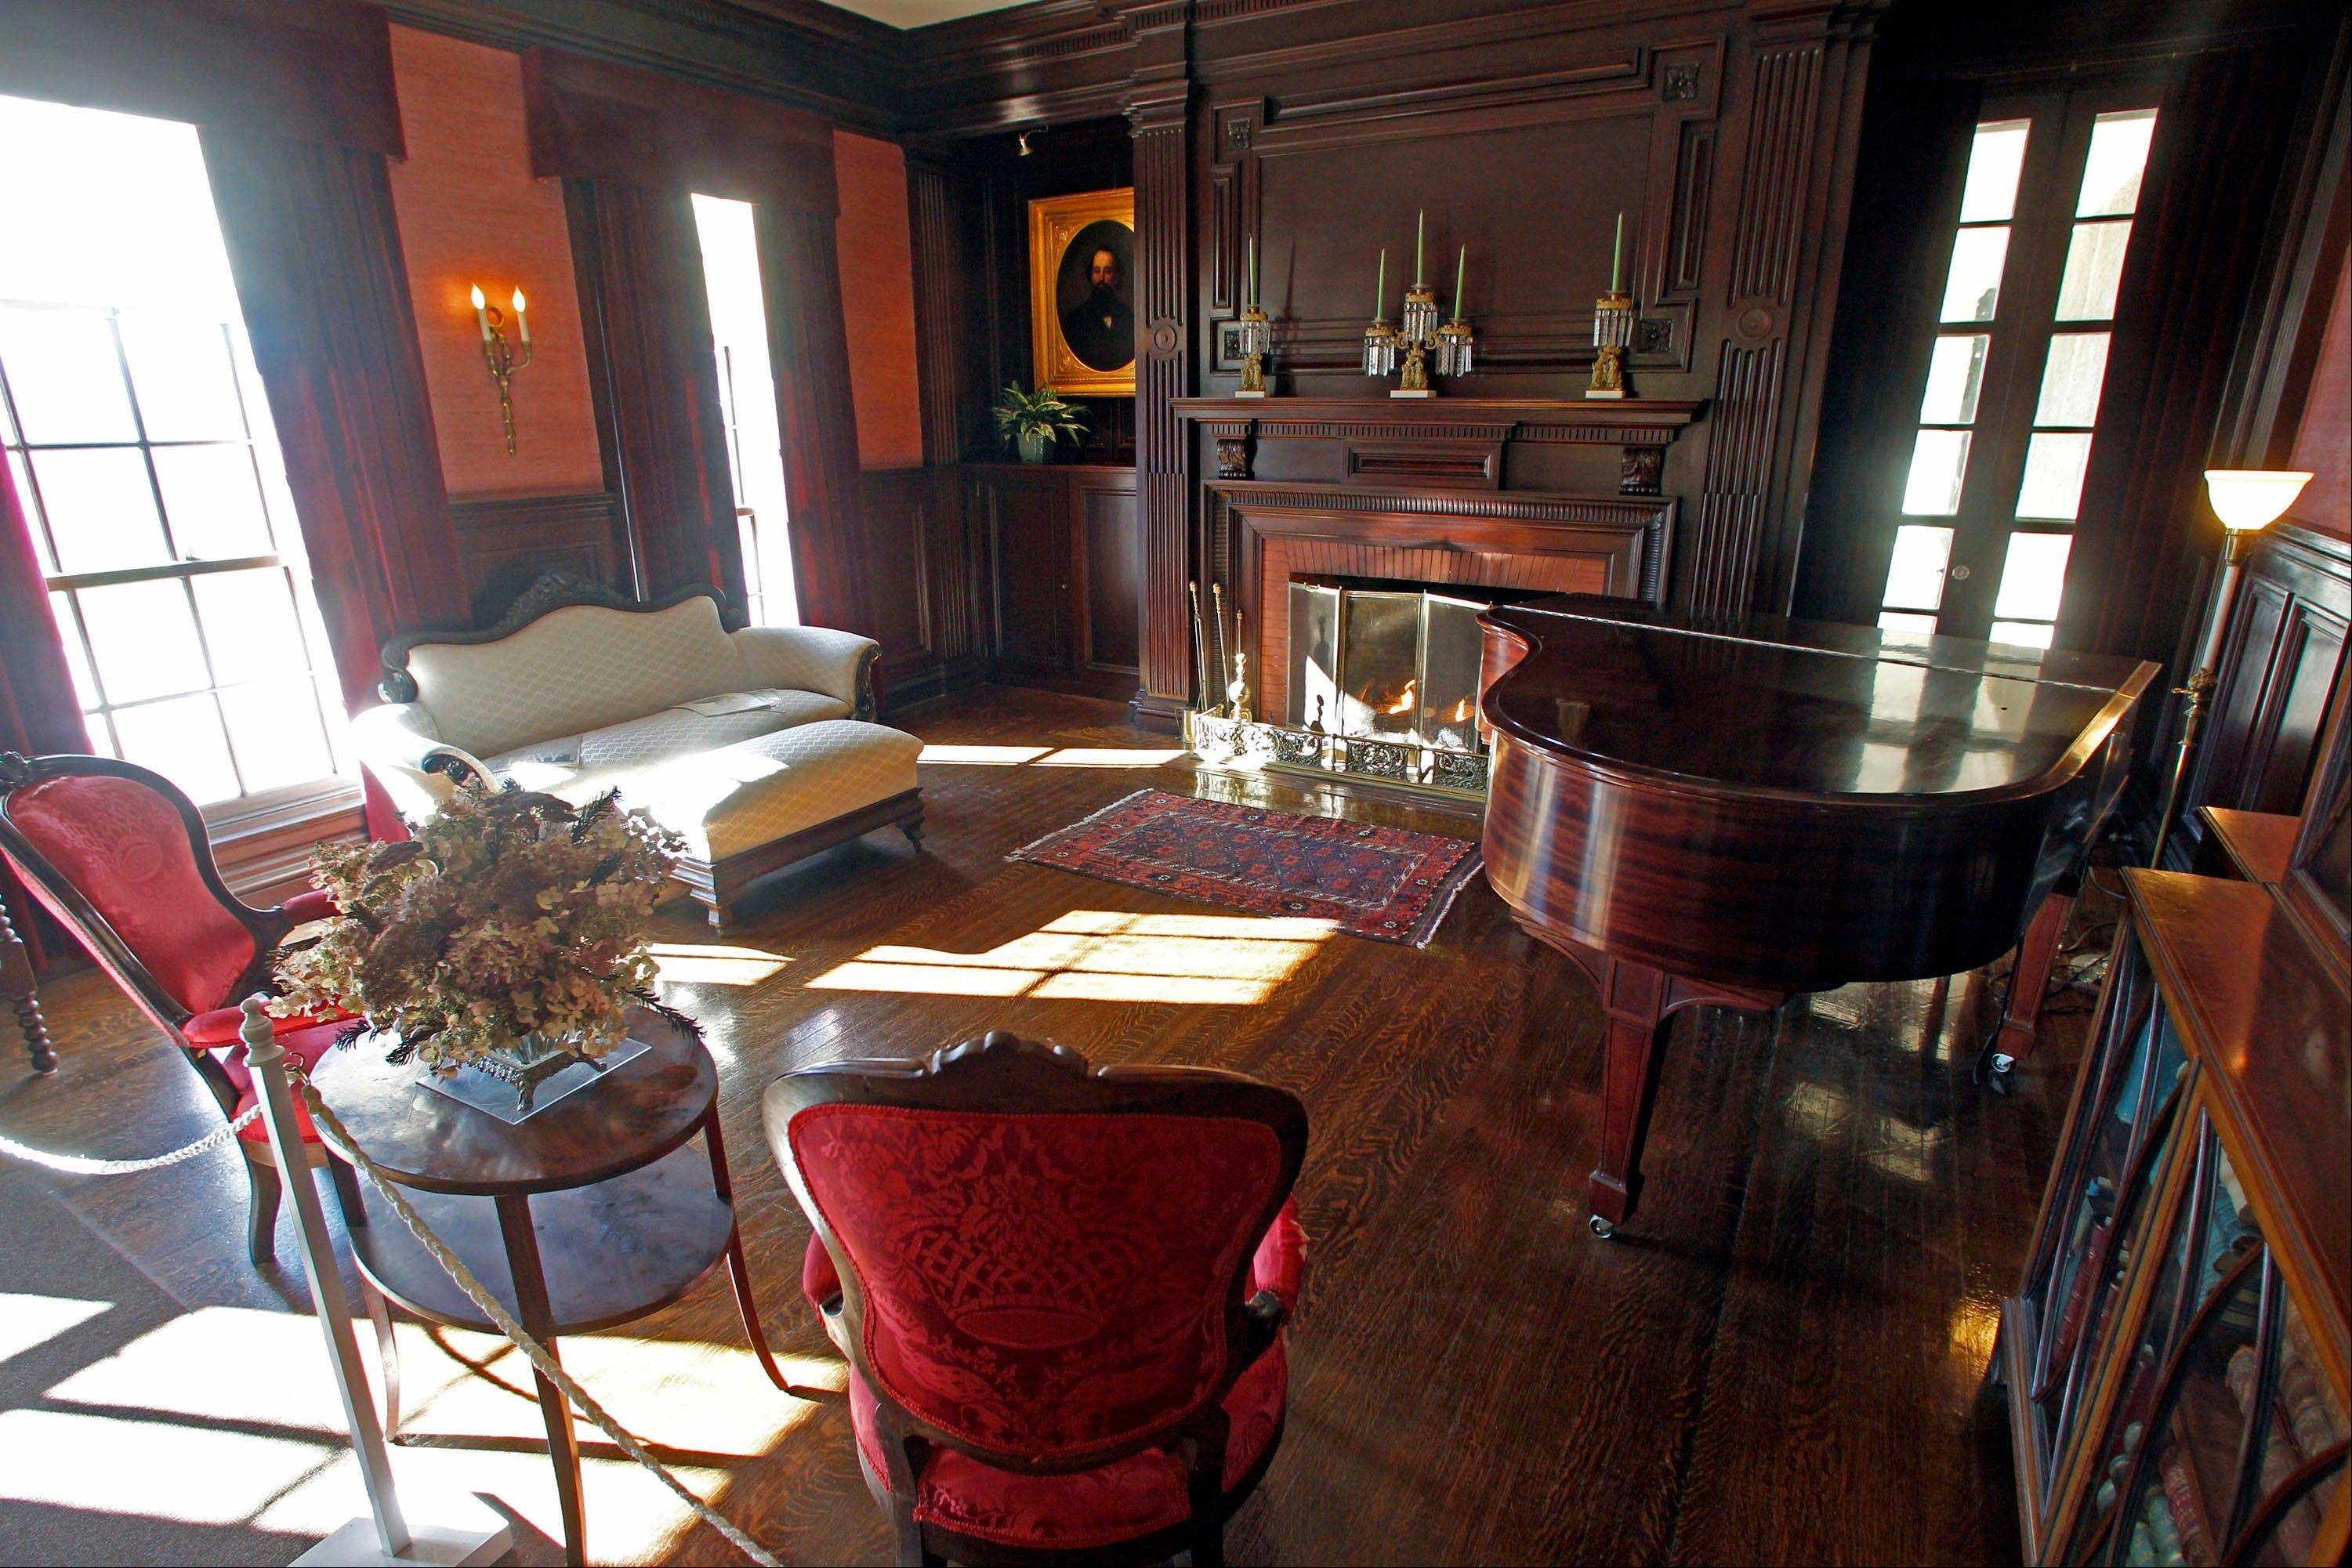 The parlor at the Robert Todd Lincoln mansion in Manchester, Vt.